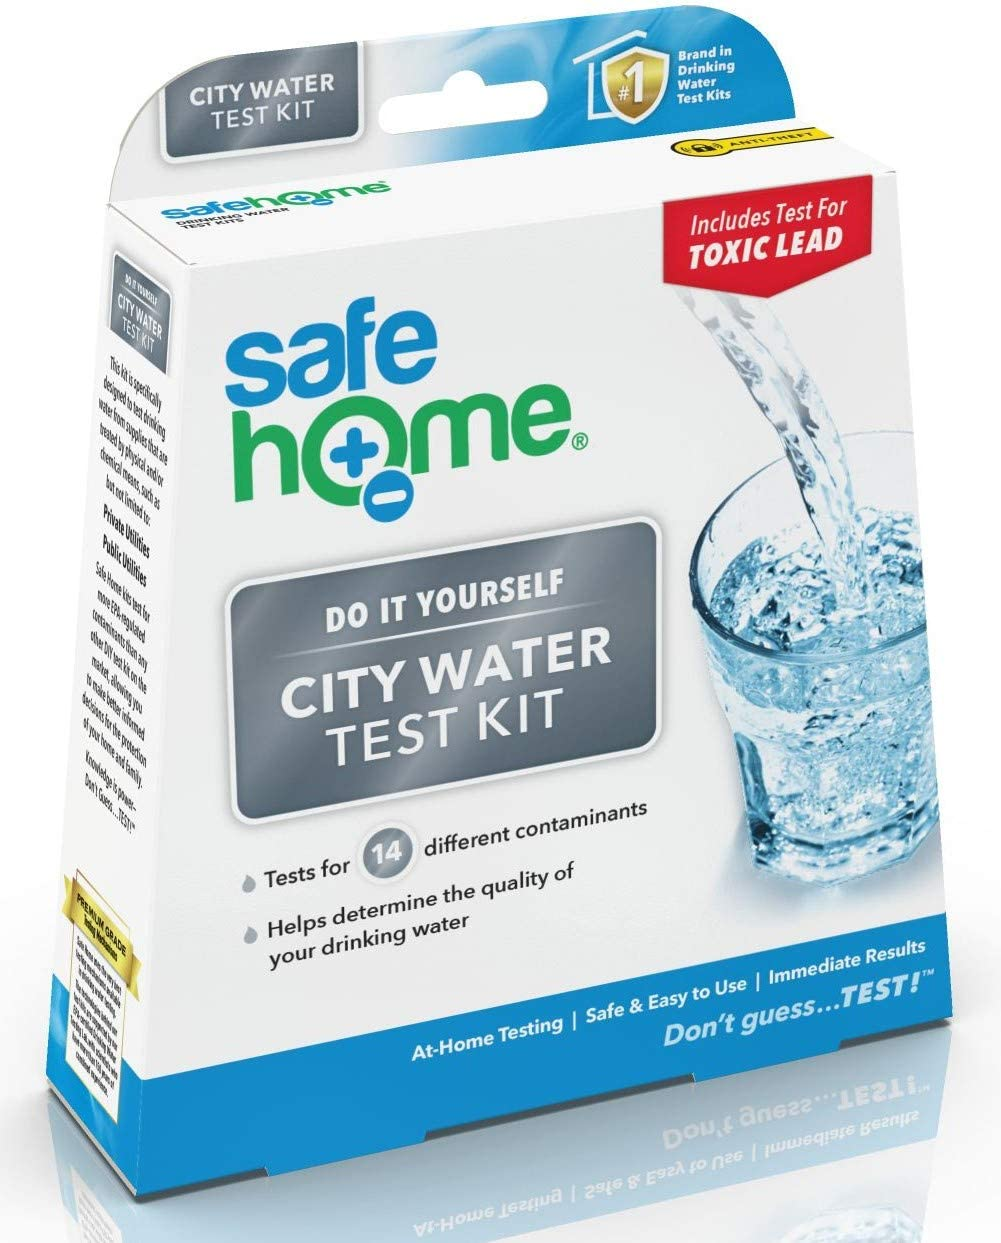 Safe Home CITY WATER Test Kit – DIY Testing for 14 Different Parameters in a City Water Supply – Lead, Copper, Iron, Zinc, Chlorine, pH, Hardness & More.